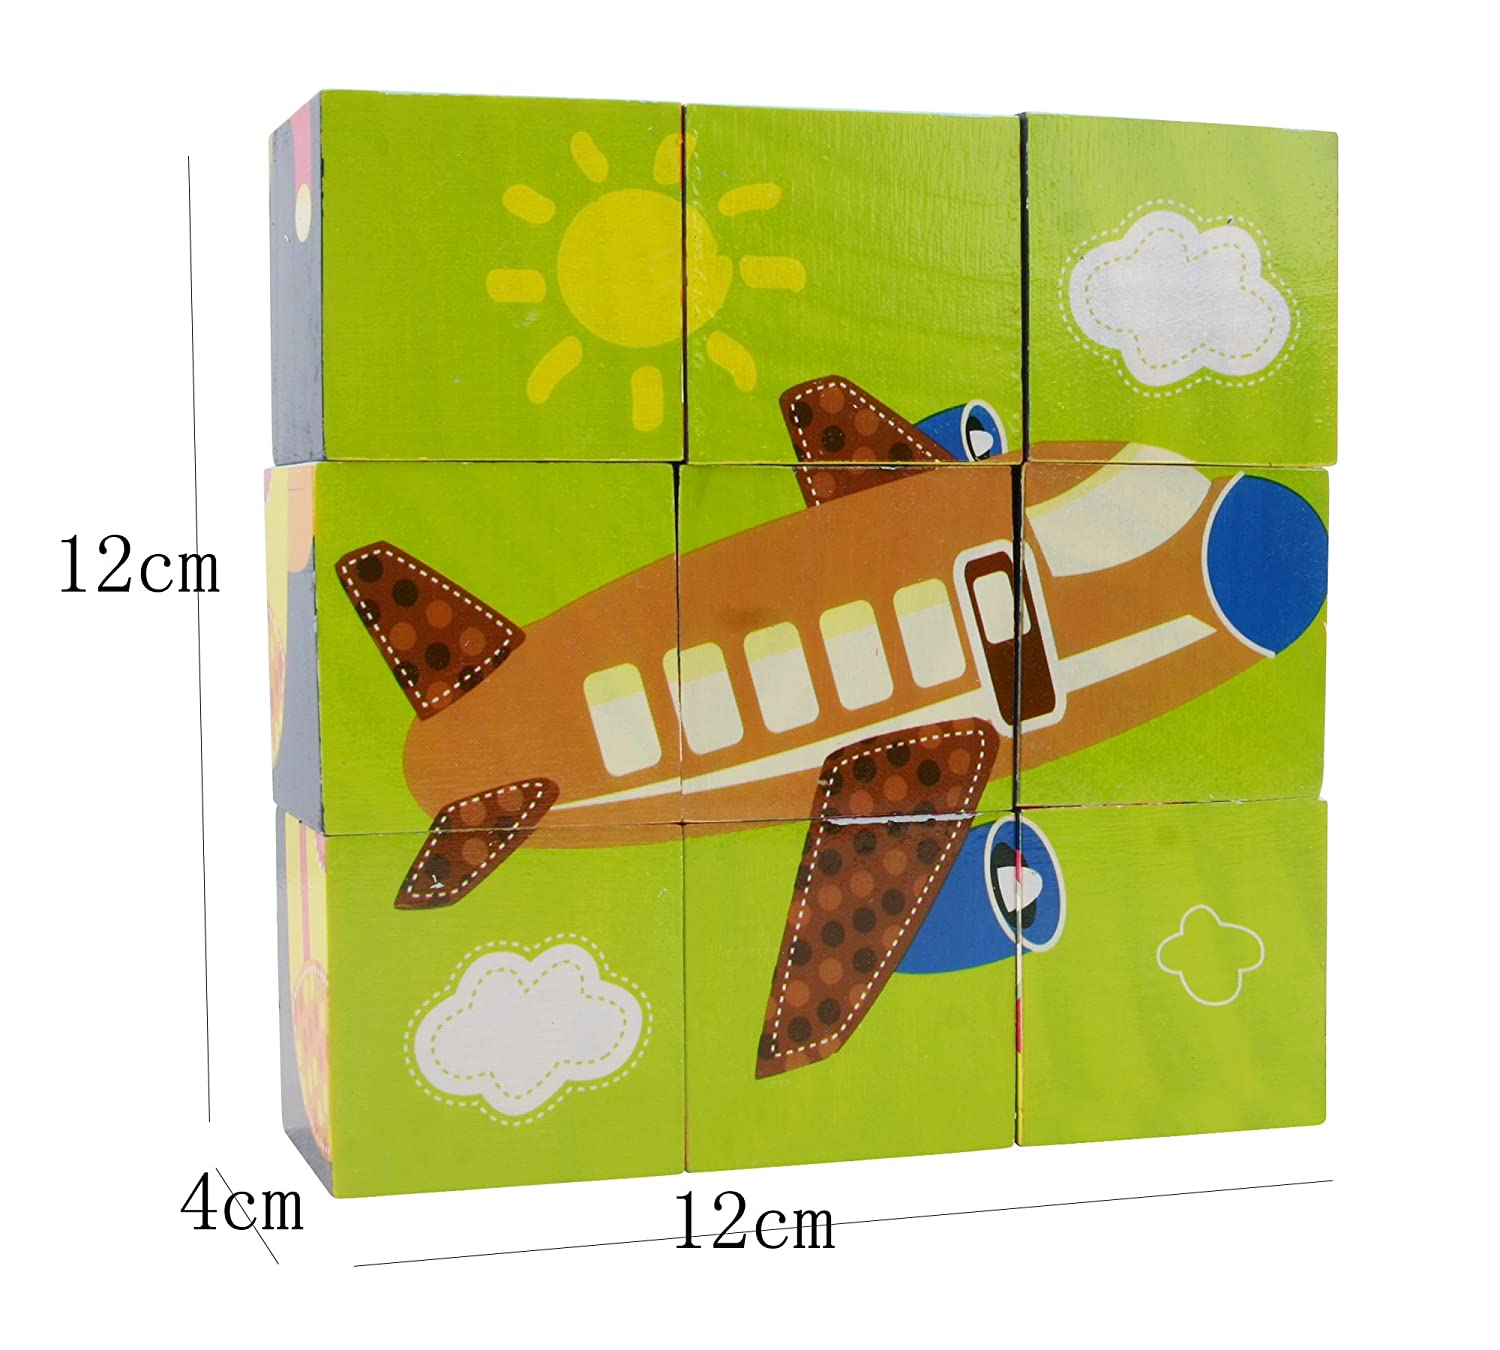 Helicopter Aircraft Airplane Yacht Motorboat Submarine Space Shuttle Ship Boat WJSYSHOP 9 Piece 3D Wooden Blocks Jigsaw Cube Puzzle Toy with Storage Tray for Kids Children